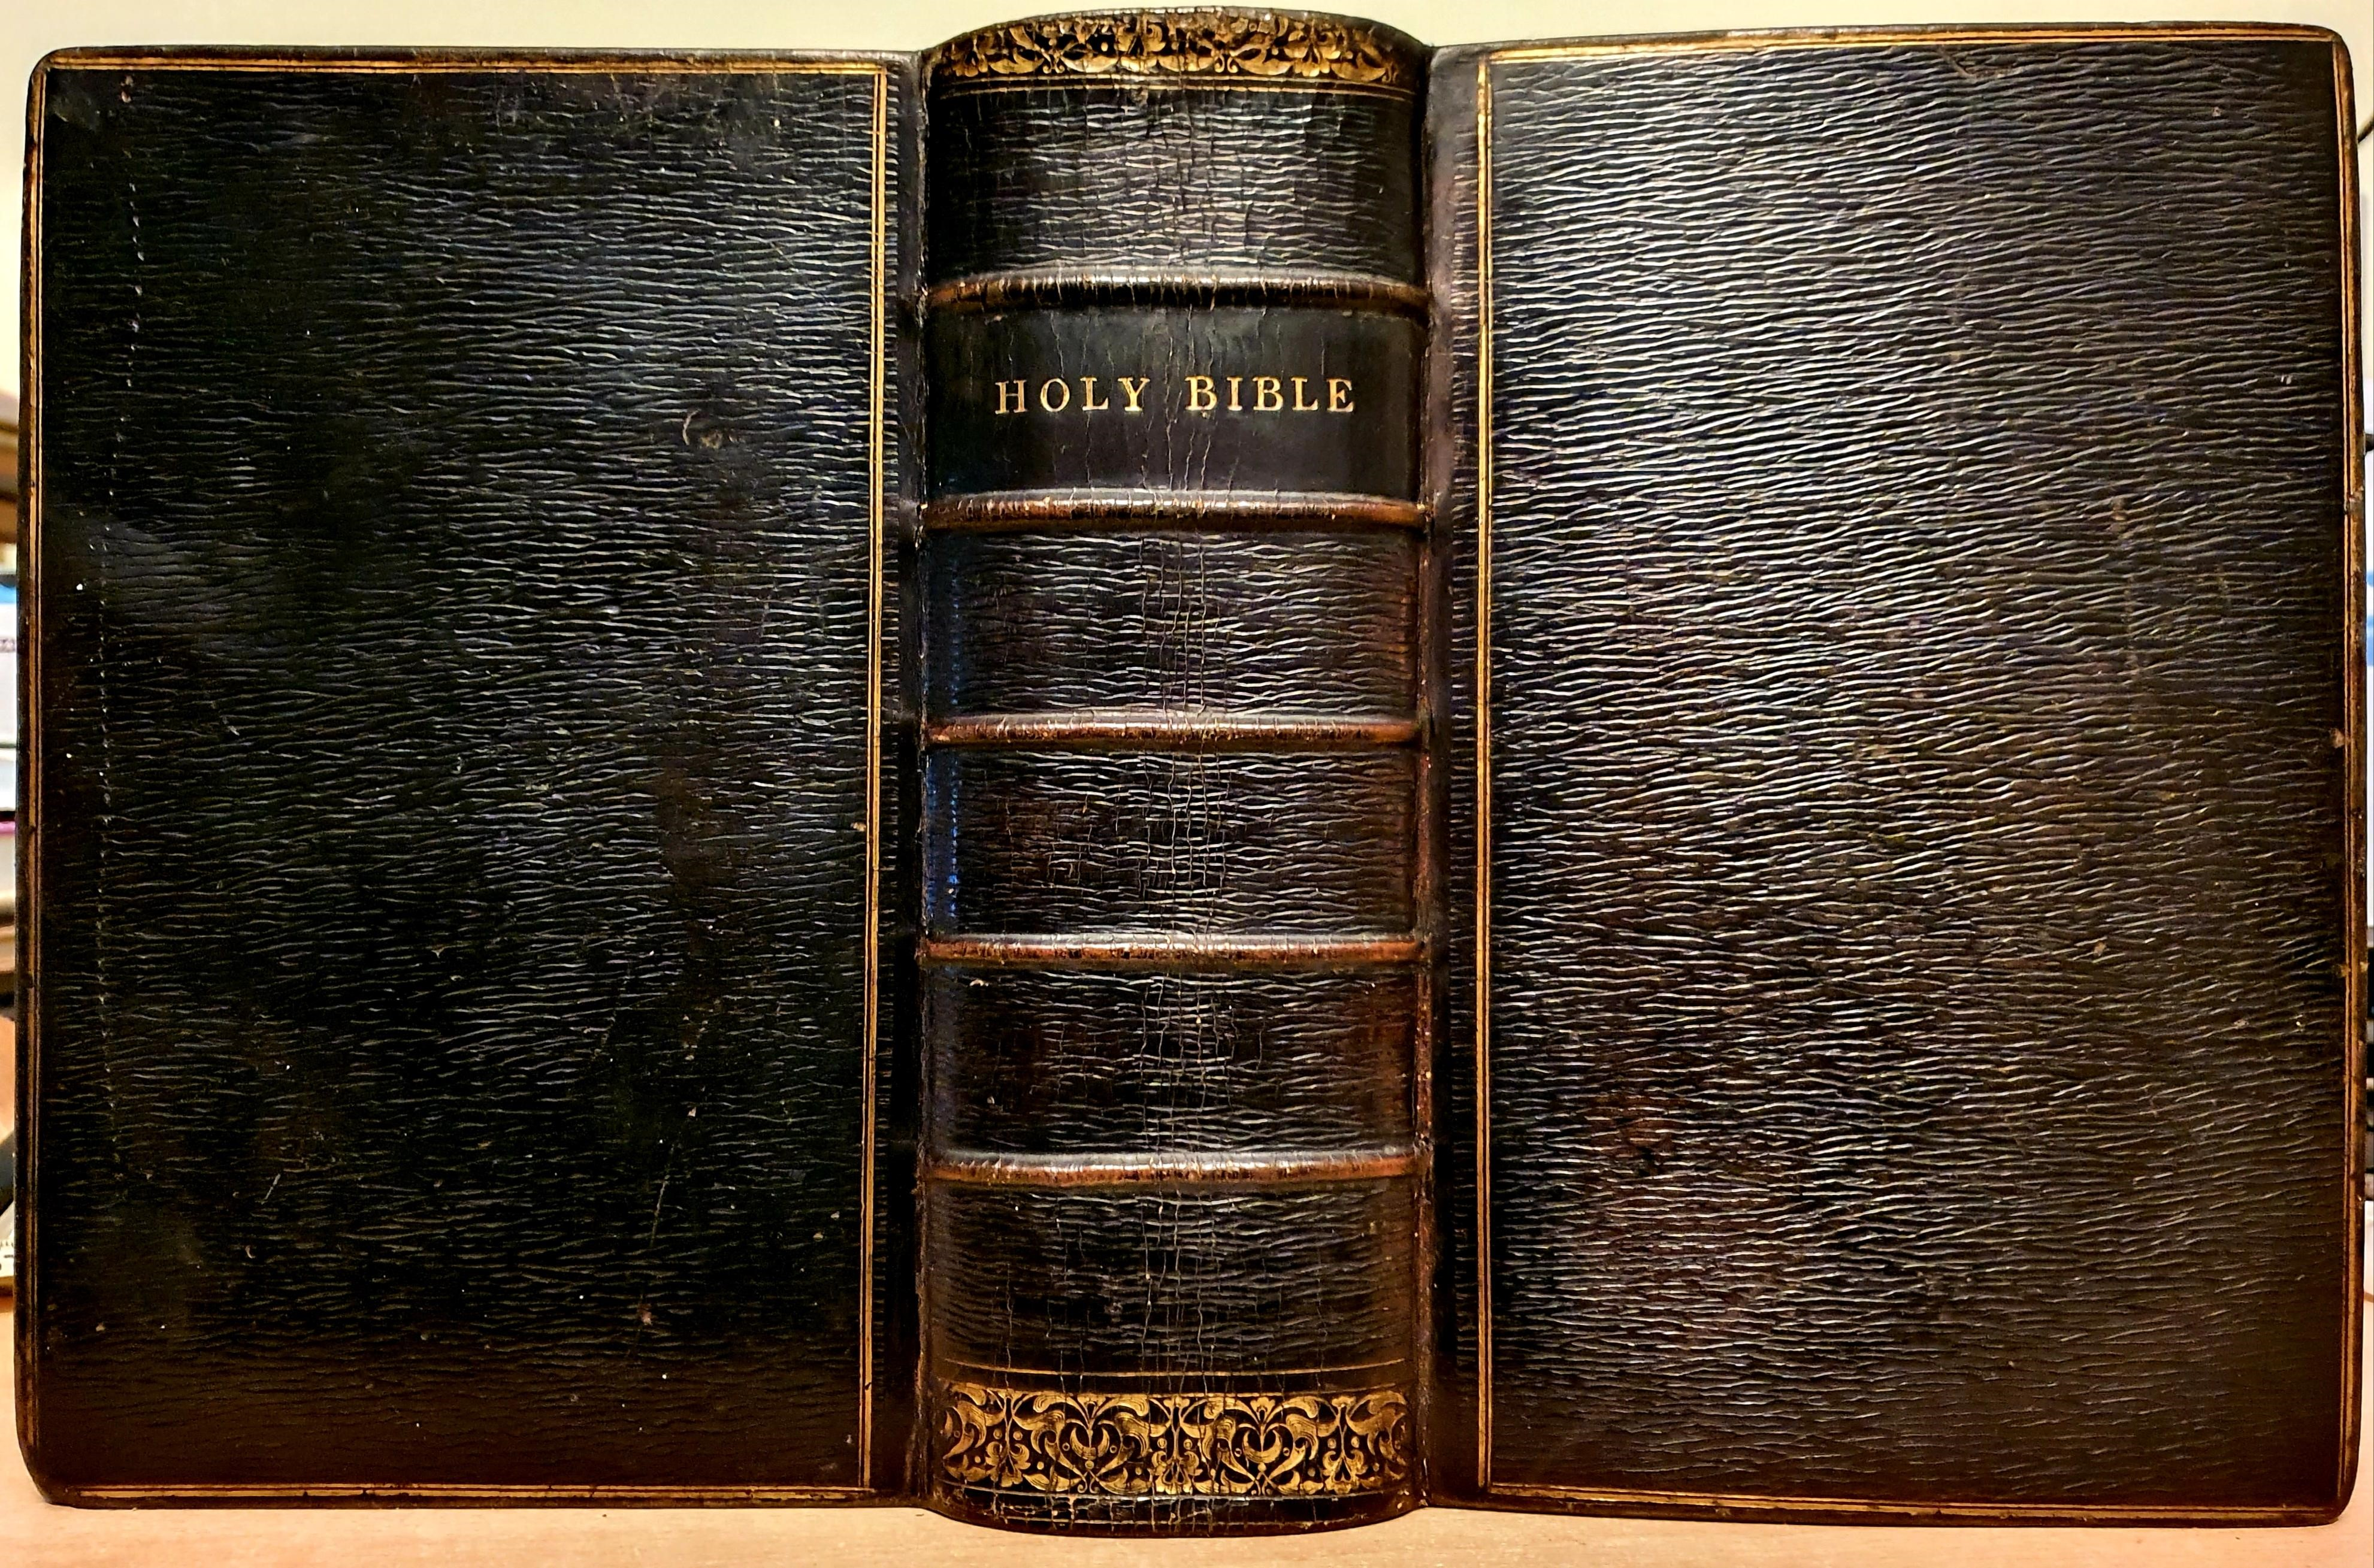 Image for The Holy Bible, Containing The Old And New Testaments: translated Out Of The original Tongues: And With The Former Translations Diligently Compared And revised. By His Majesty's Special Command. Appointed To Be Read In Churches.